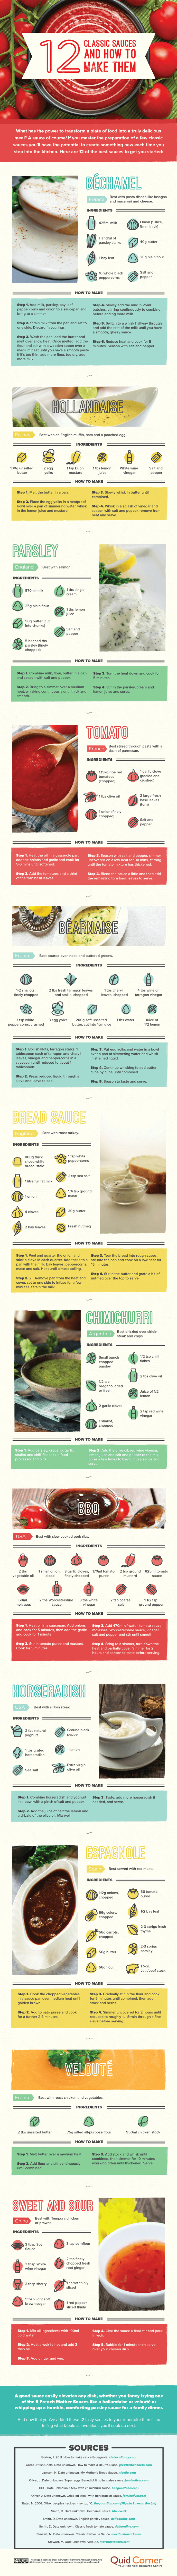 infographic of sauce recipes